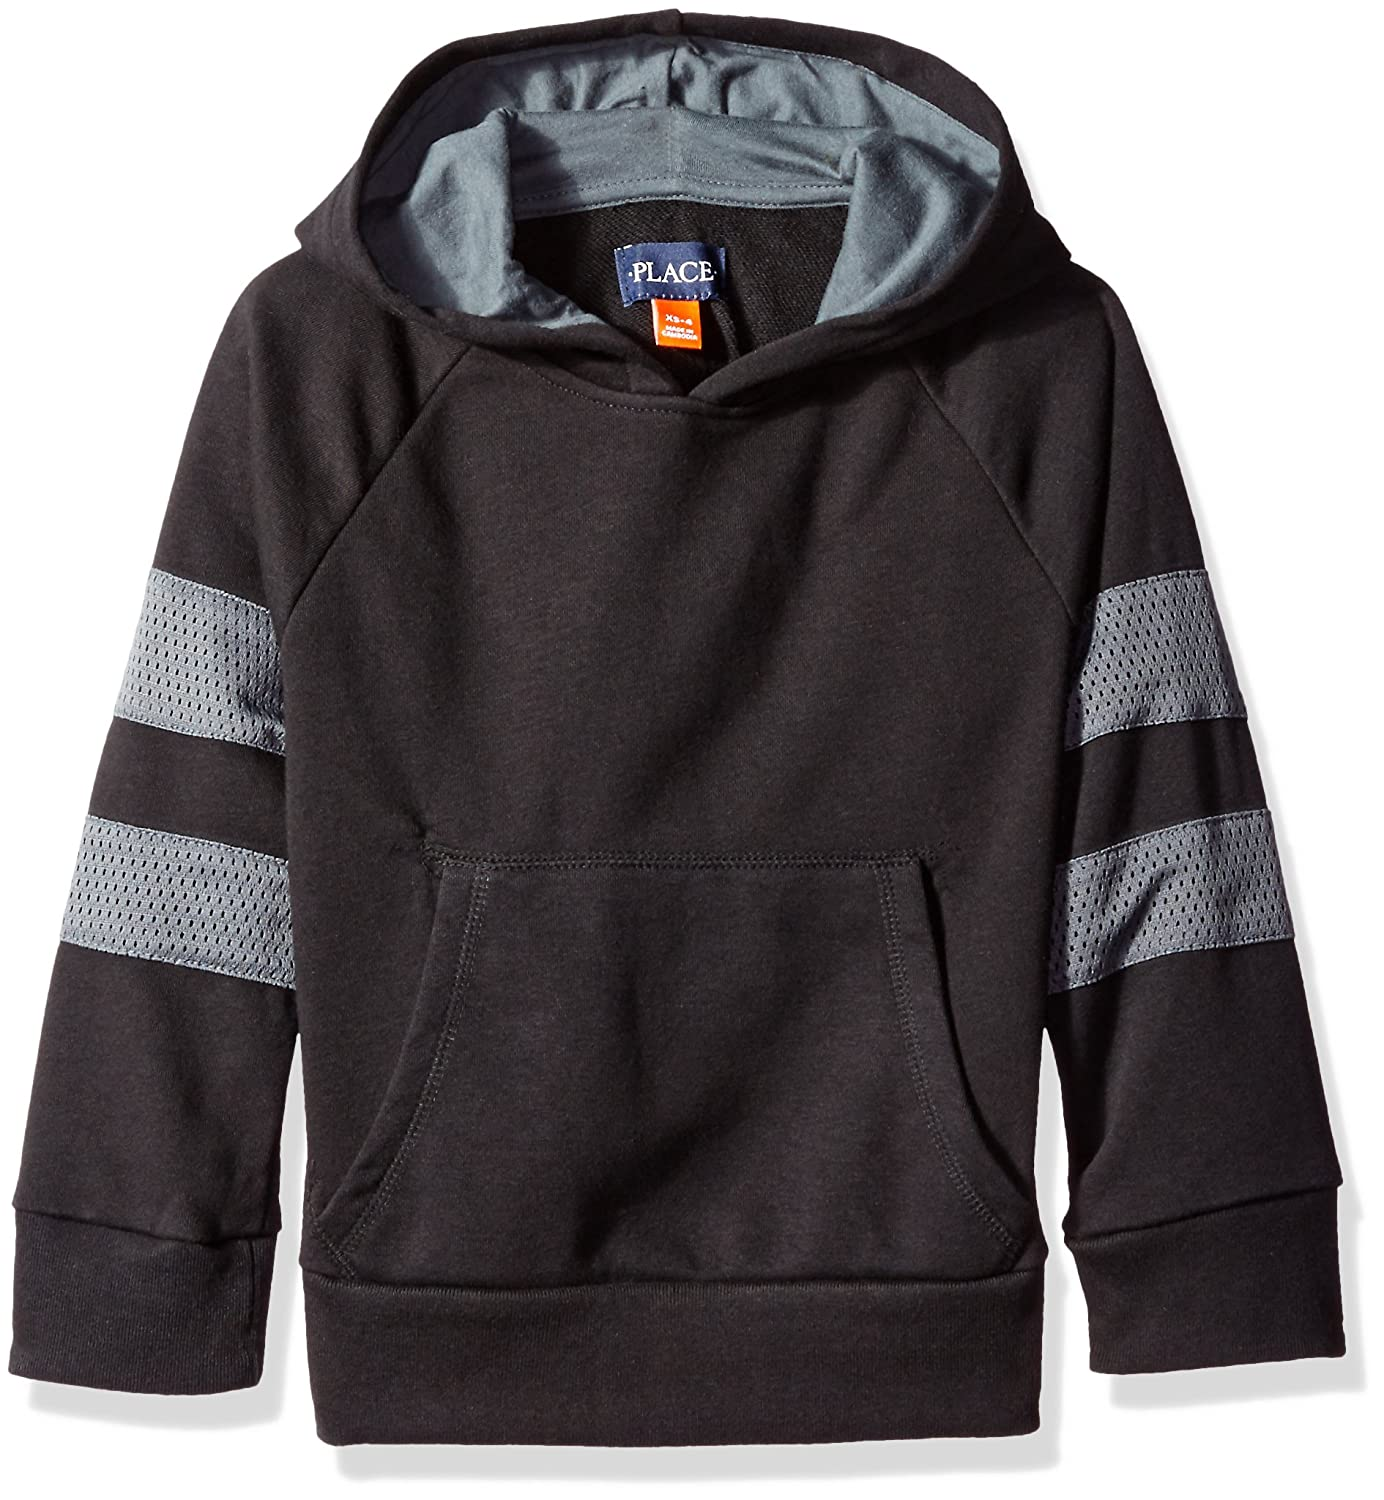 The Children's Place Boys' Popover Hoodie supplies